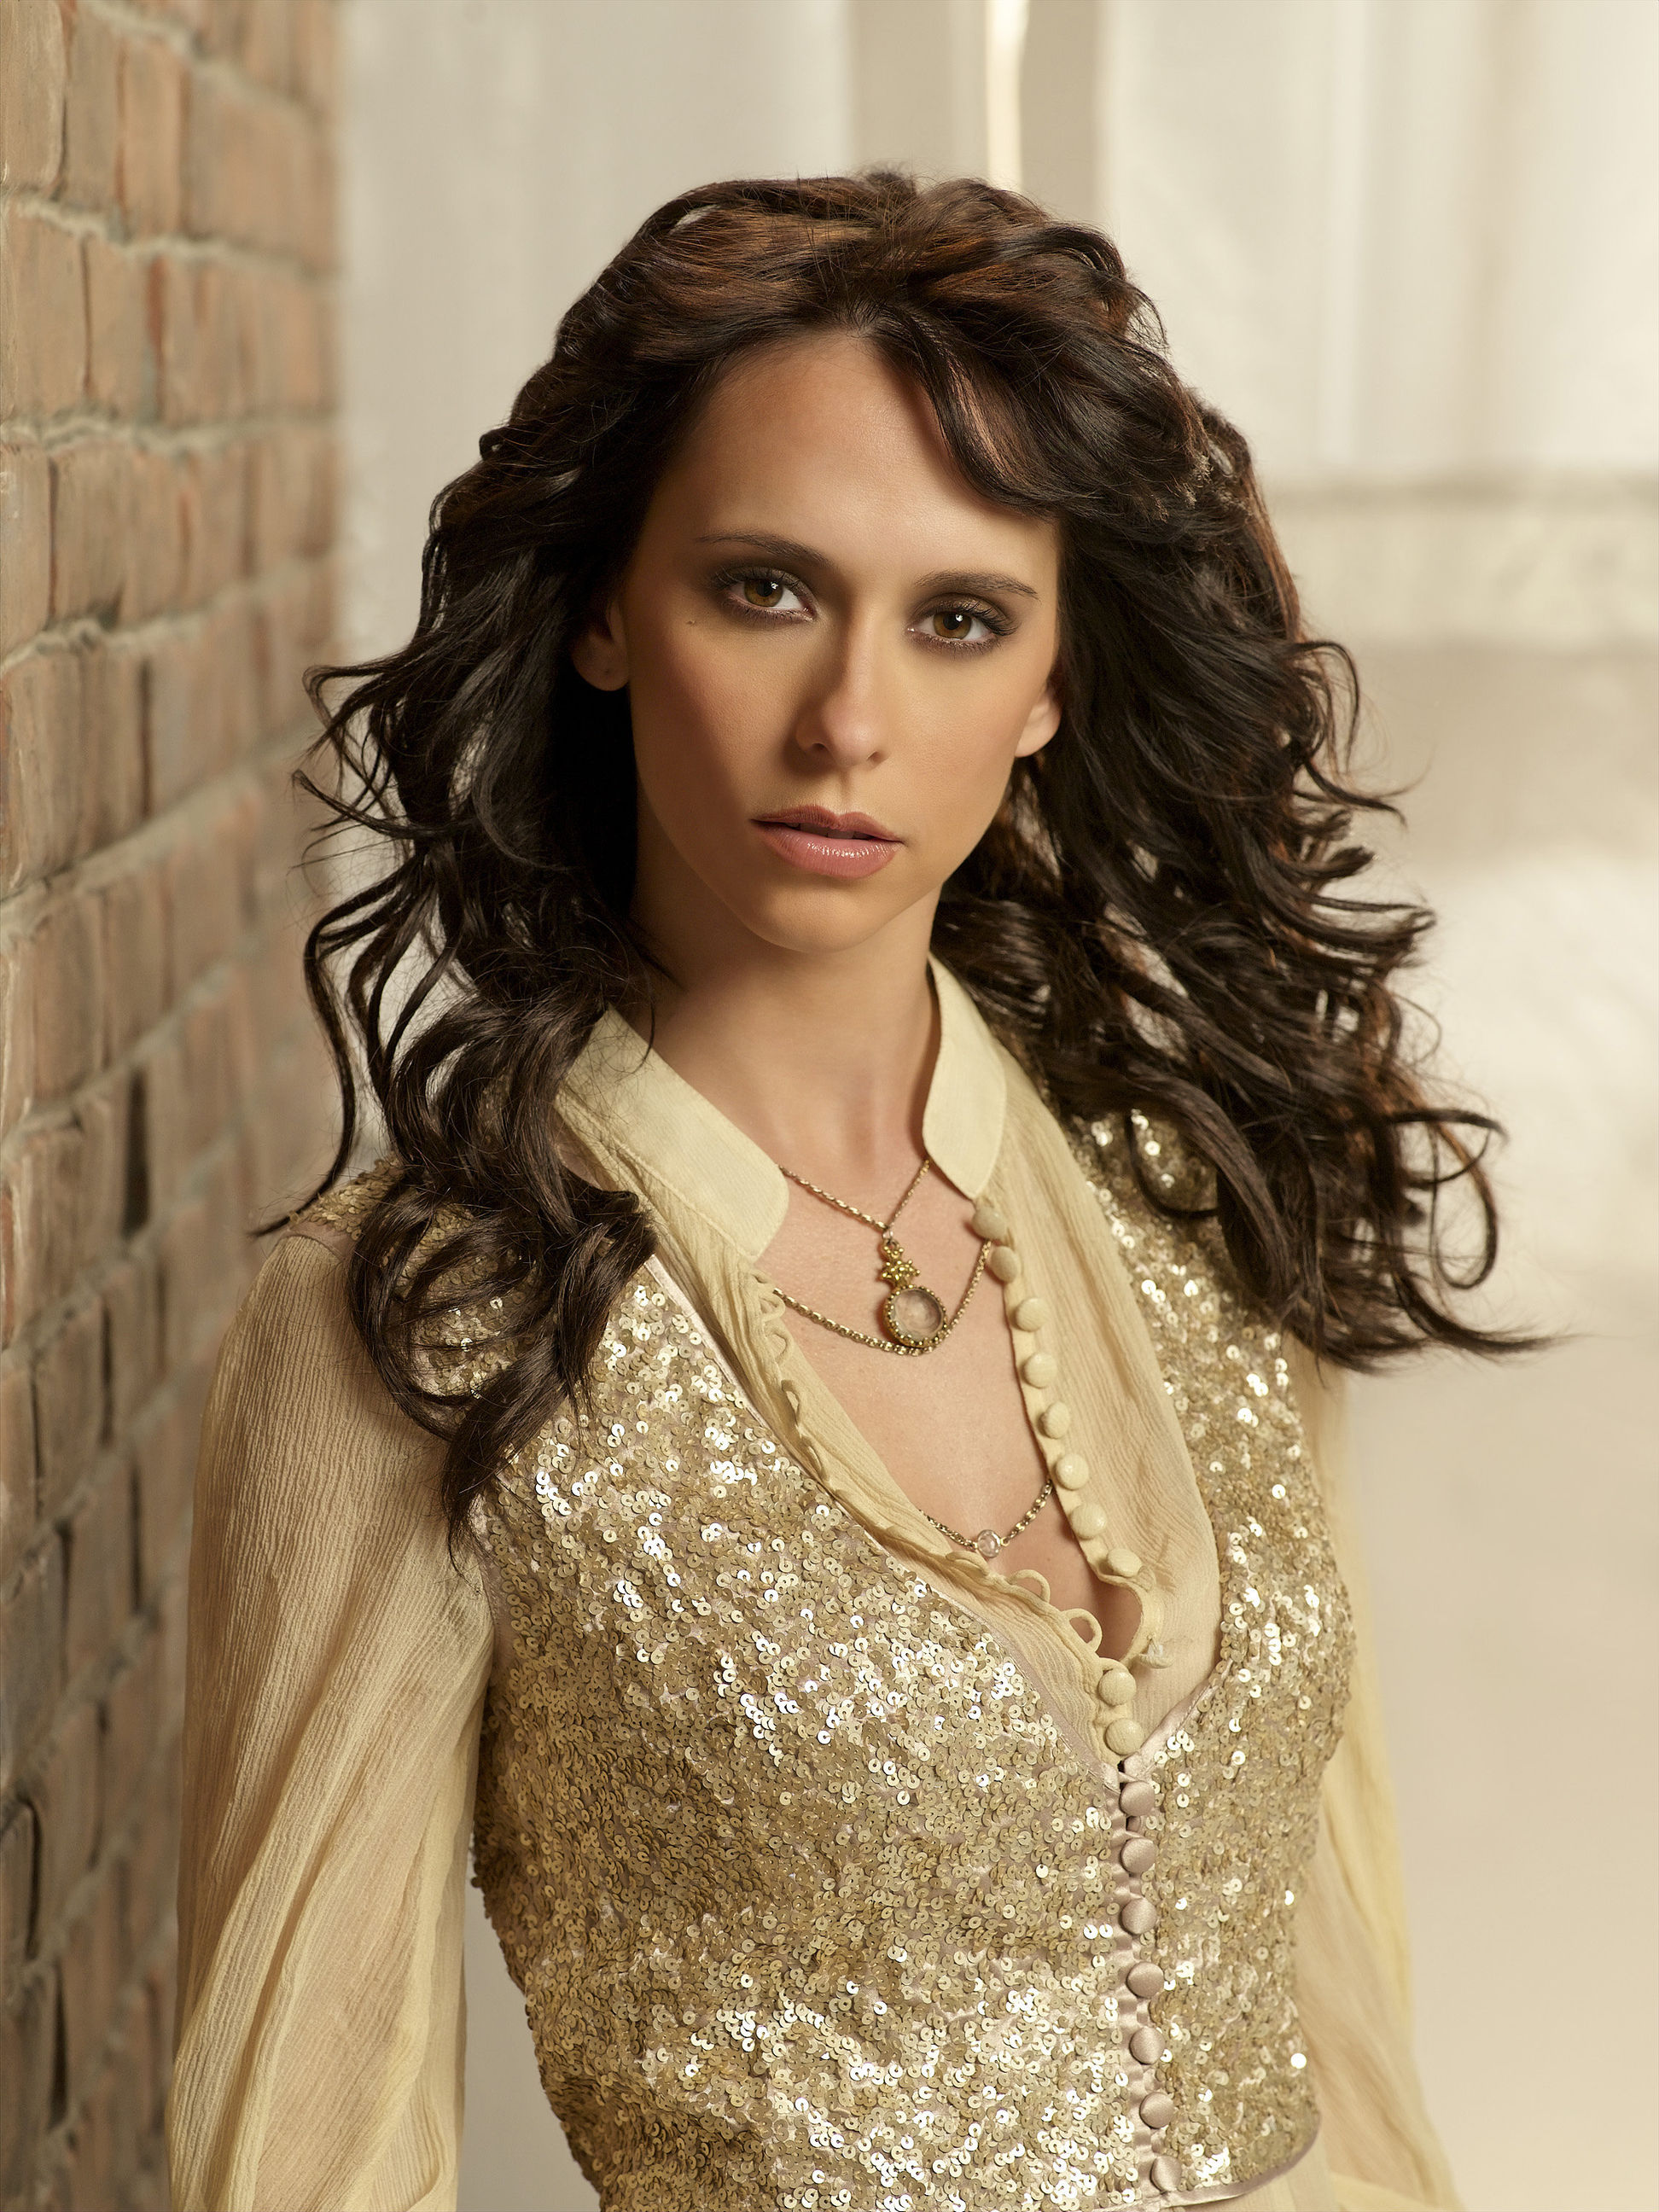 Jennifer Love Hewitt American actress and singer-songwriter - Biography